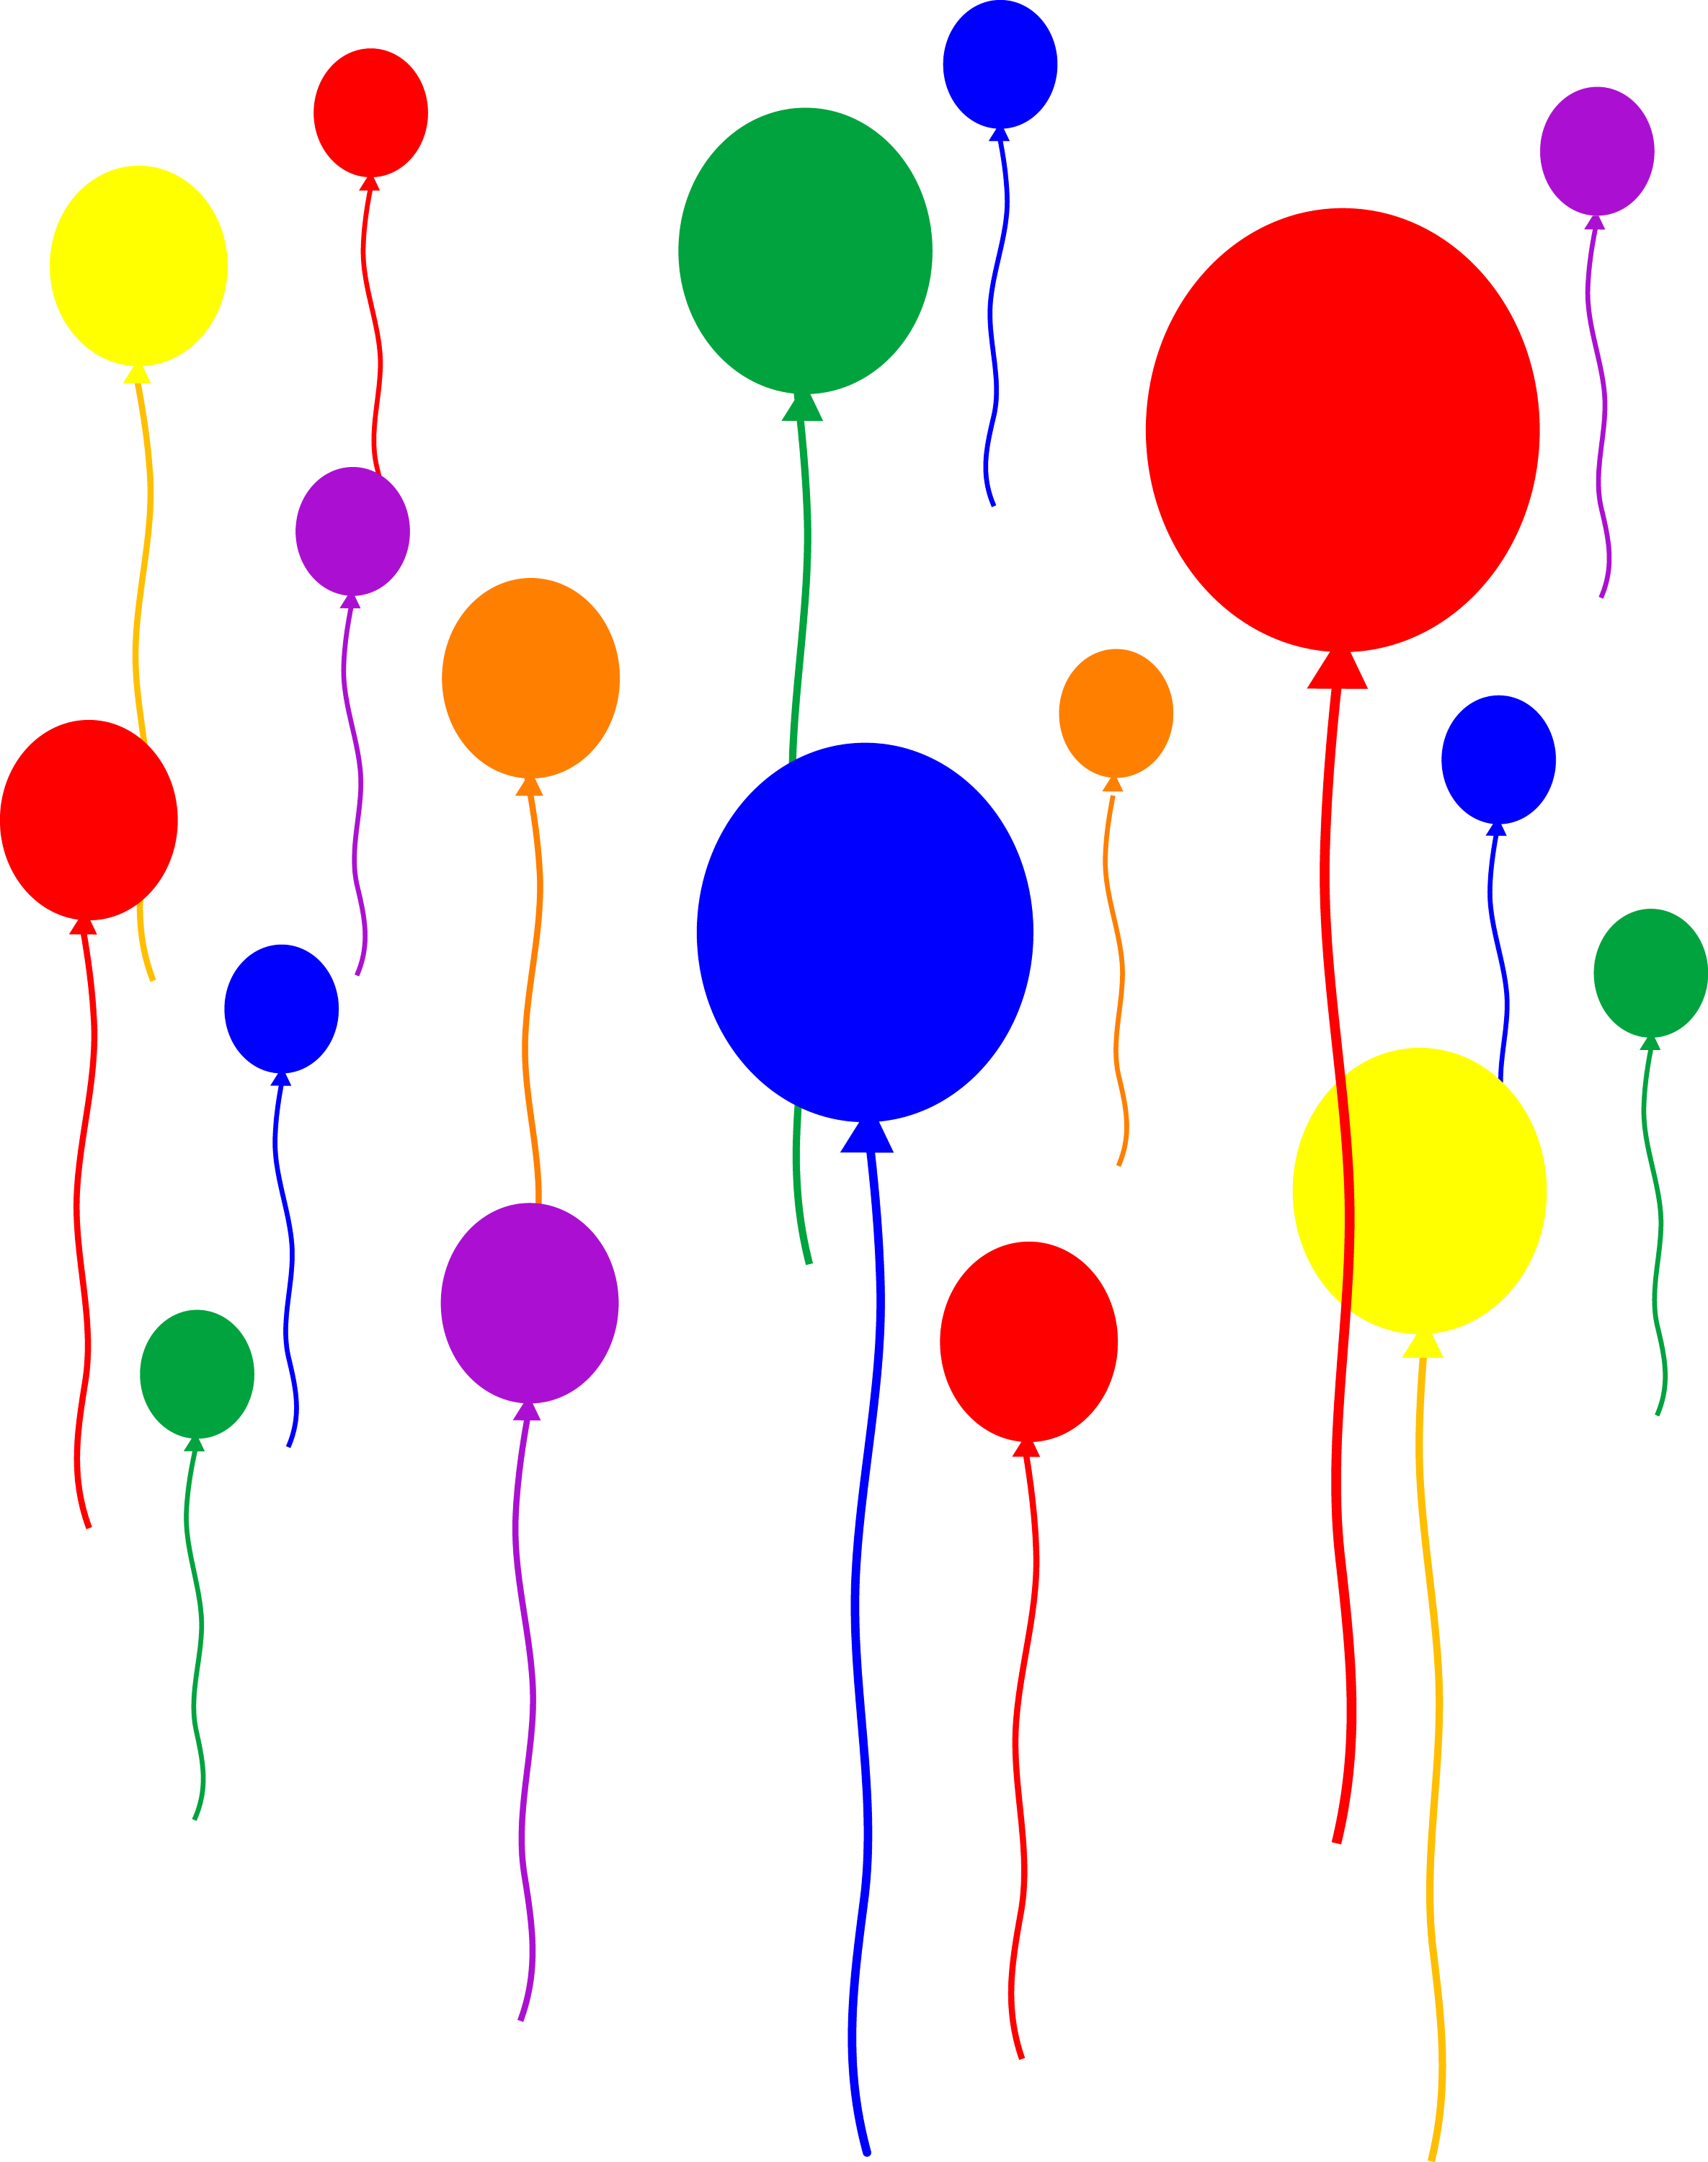 party balloons on transparent background free clip art rh sweetclipart com background clip art png background clipart free